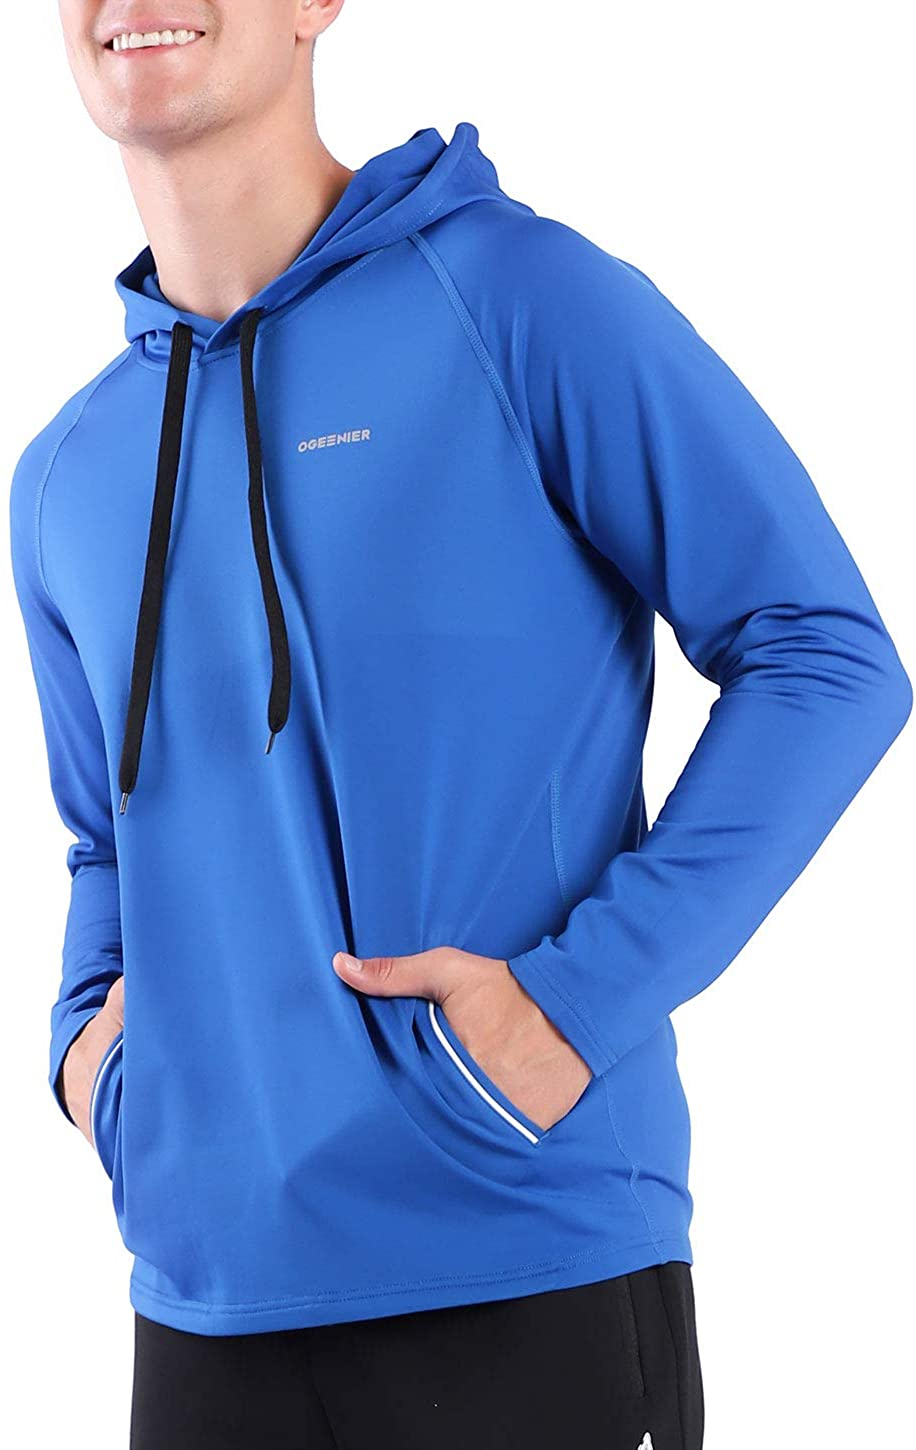 Ogeenier Men's Fashion Athletic Long Sleeve Hoodies Workout Training Pullover Casual Hooded Sweatshirt with Pocket